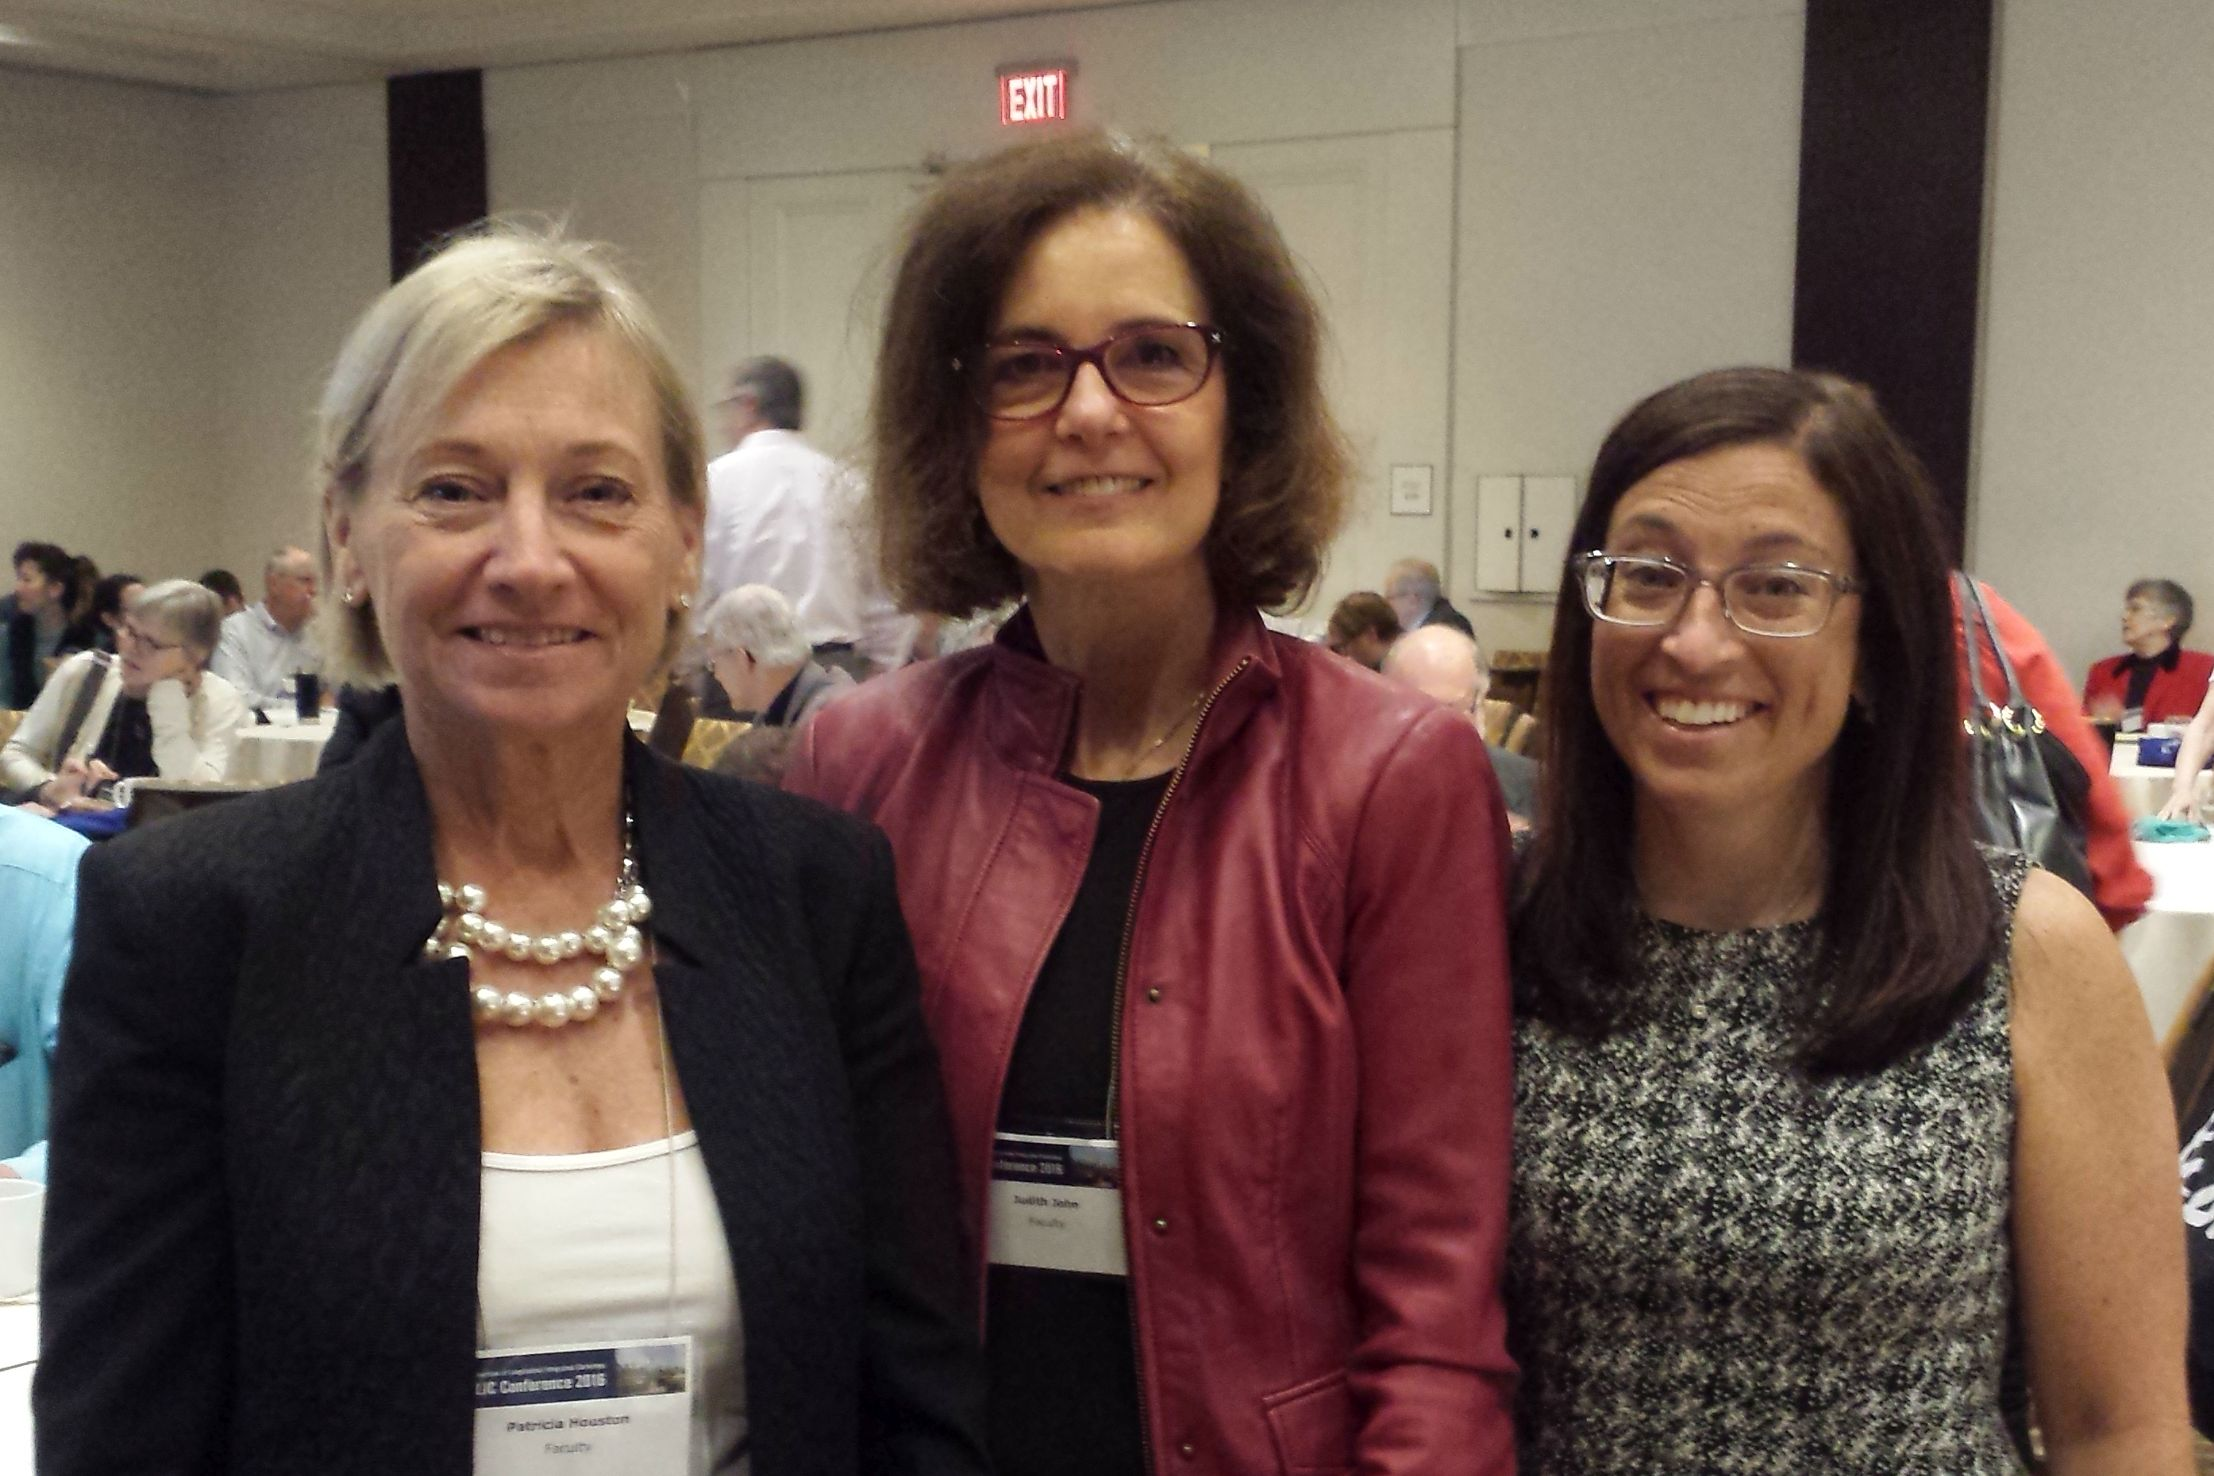 MD Program Vice Dean Patricia Houston joins plenary speaker Judith John and Clerkship Director Stacey Bernstein